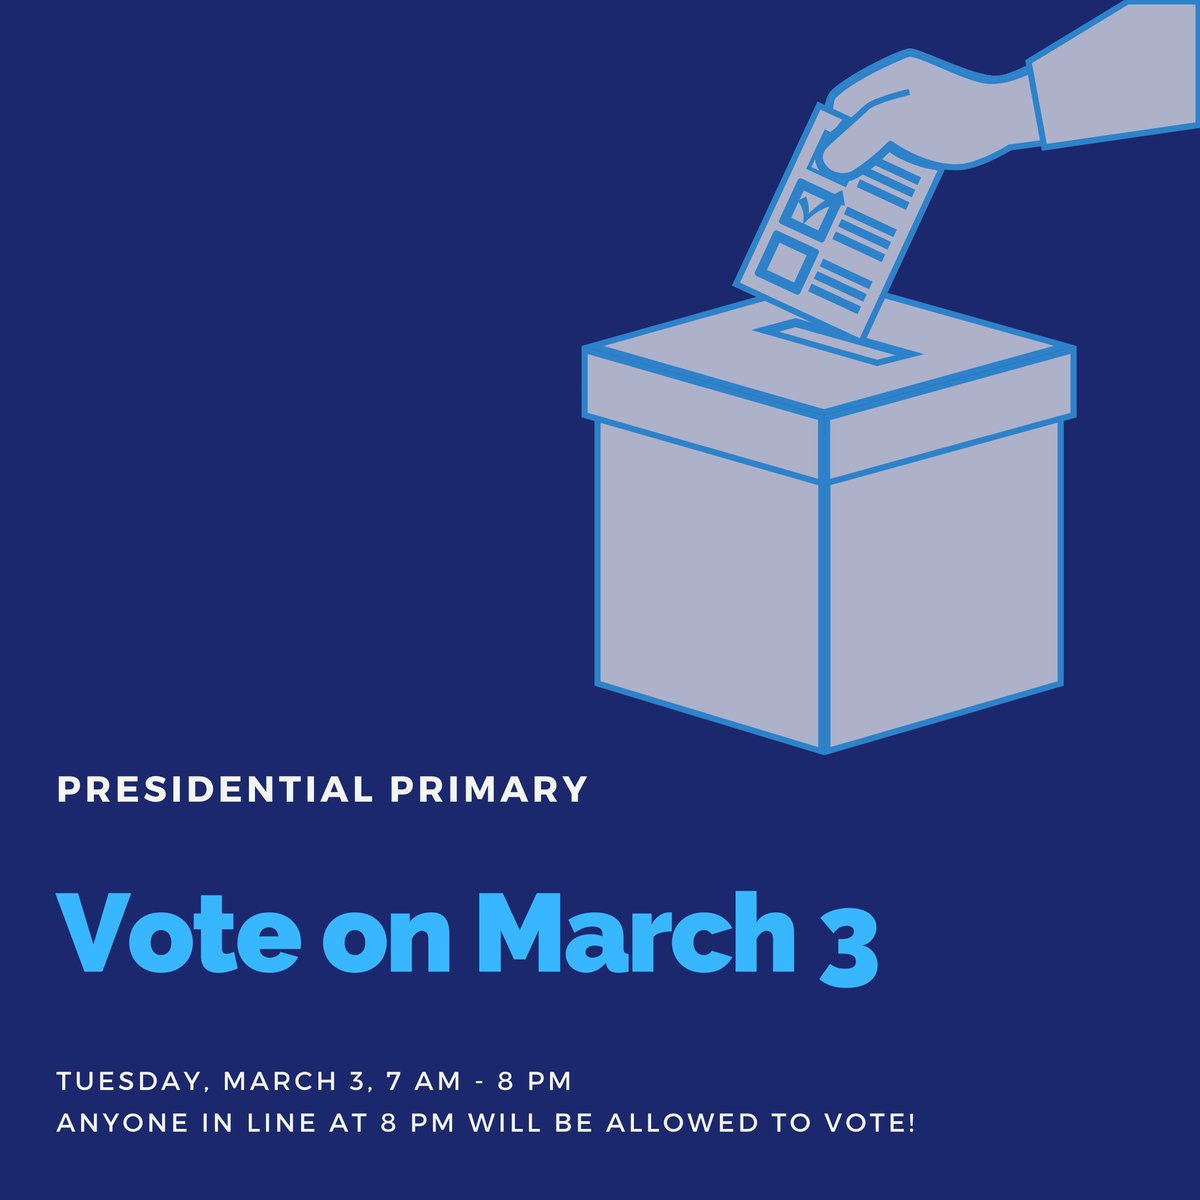 The U.S. Presidential Primary is Tuesday, March 3! Elected officials are your voice in the political process, and your vote matters.  Find dates, locations, and other resources to help you feel prepared to vote with confidence on #SuperTuesday at  http:// vote.minneapolismn.gov/voters/WCMSP-2 20823   … <br>http://pic.twitter.com/DYlKx215Ex